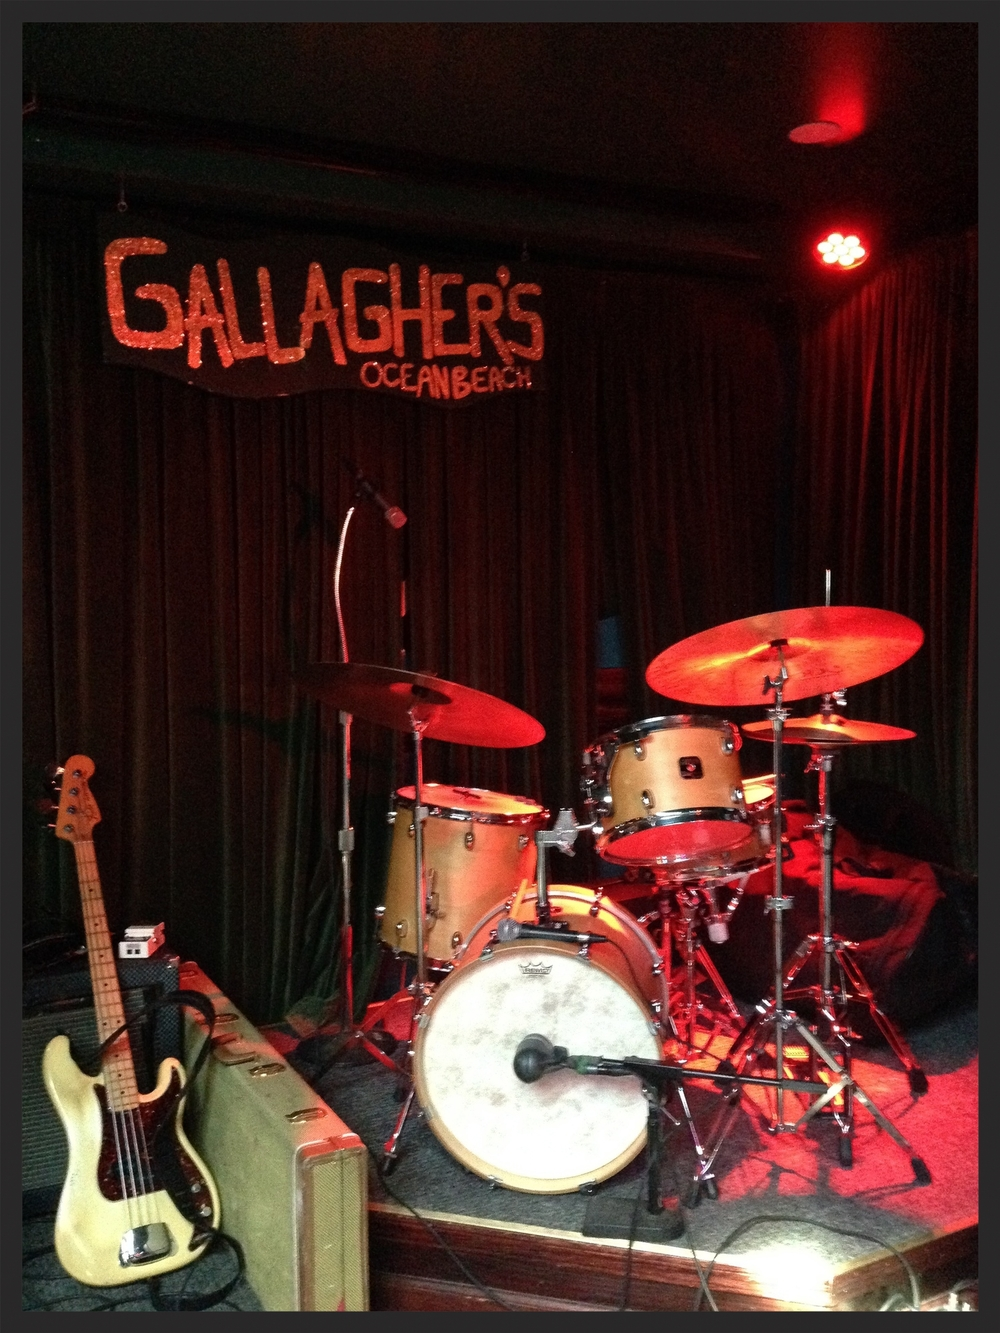 All set up at Gallagher's for the rock 'n roll dance party, courtesy Lady Dottie and the Diamonds. Photo by Anders Larsson